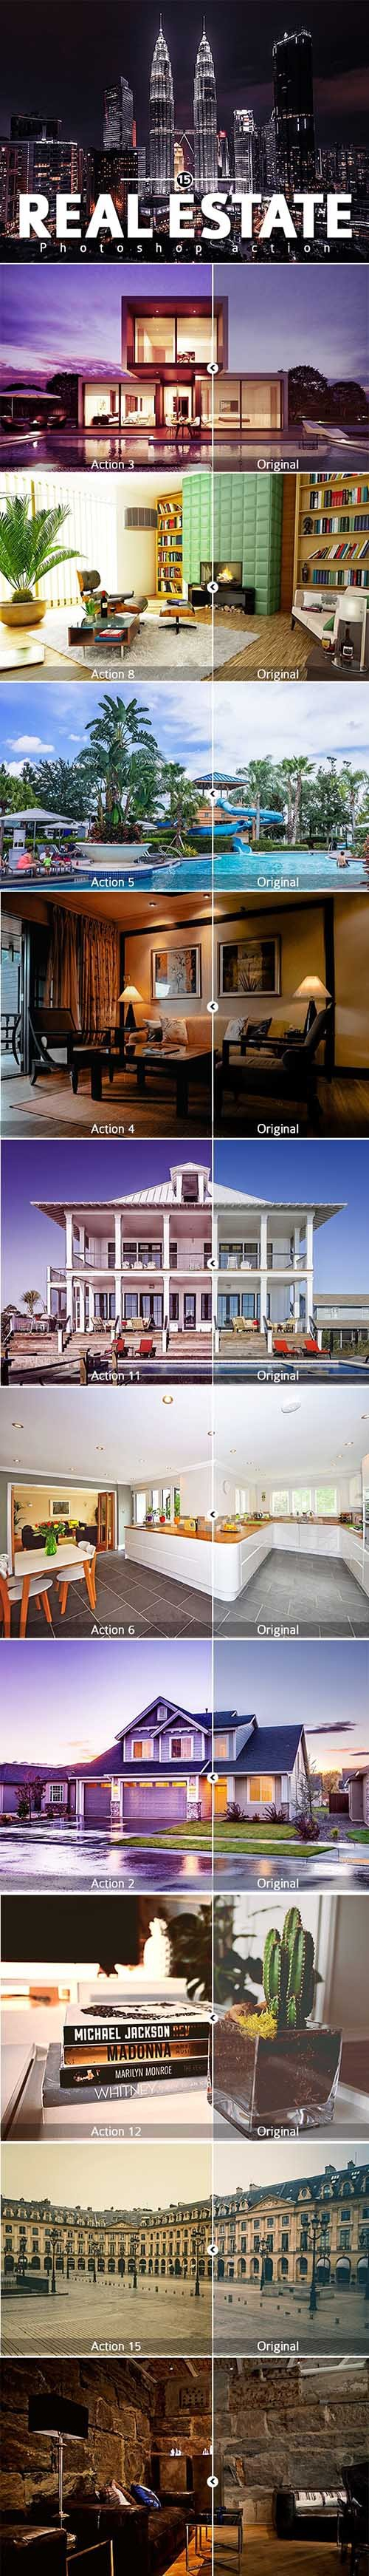 Real Estate Photoshop Action 24859571